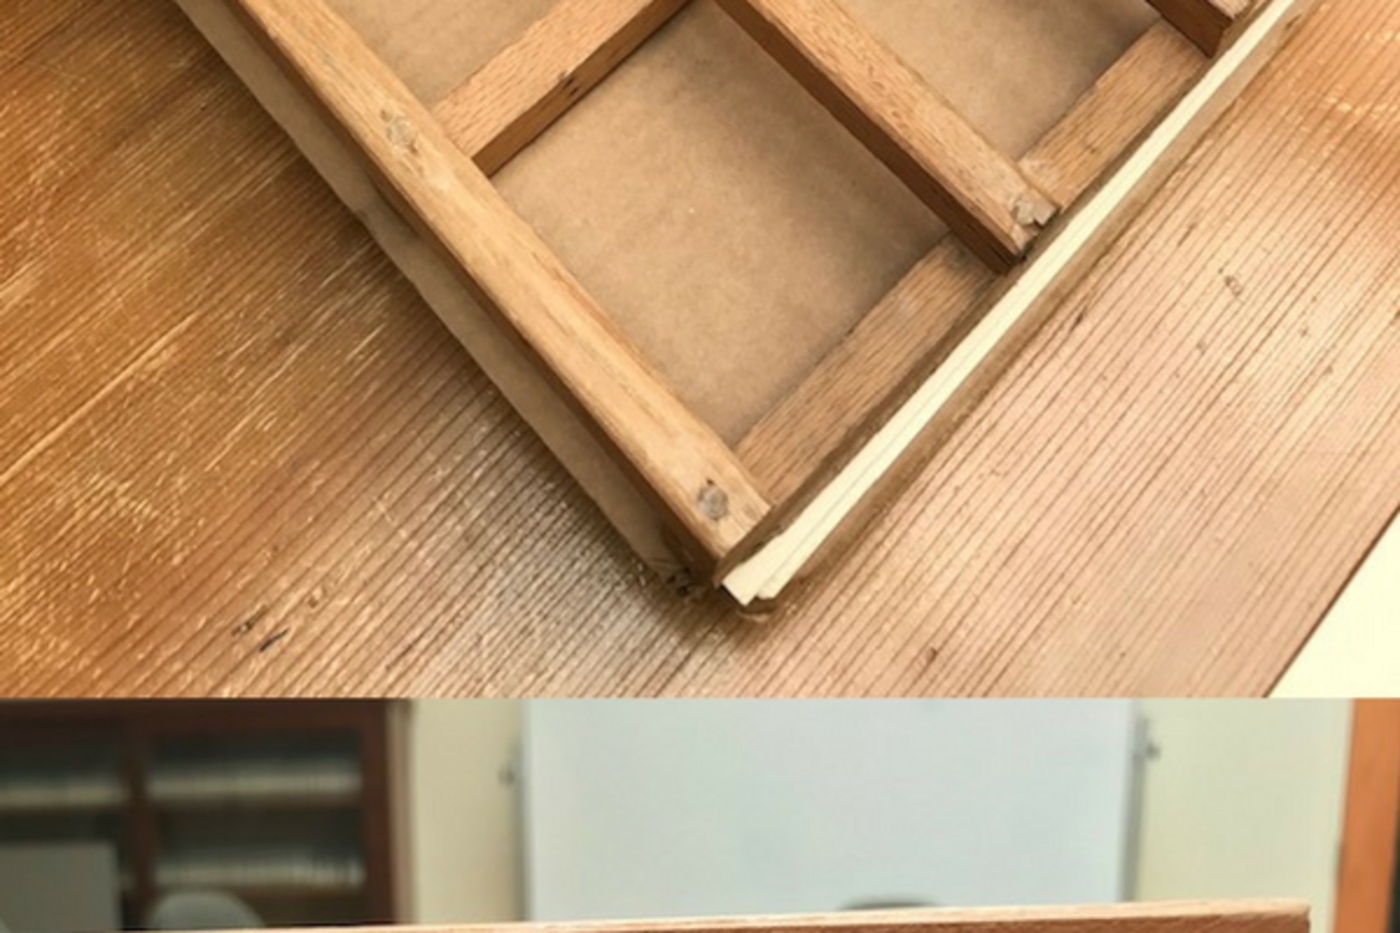 A grid made of wood, and stacked layers of the grid, cardboard, and paper